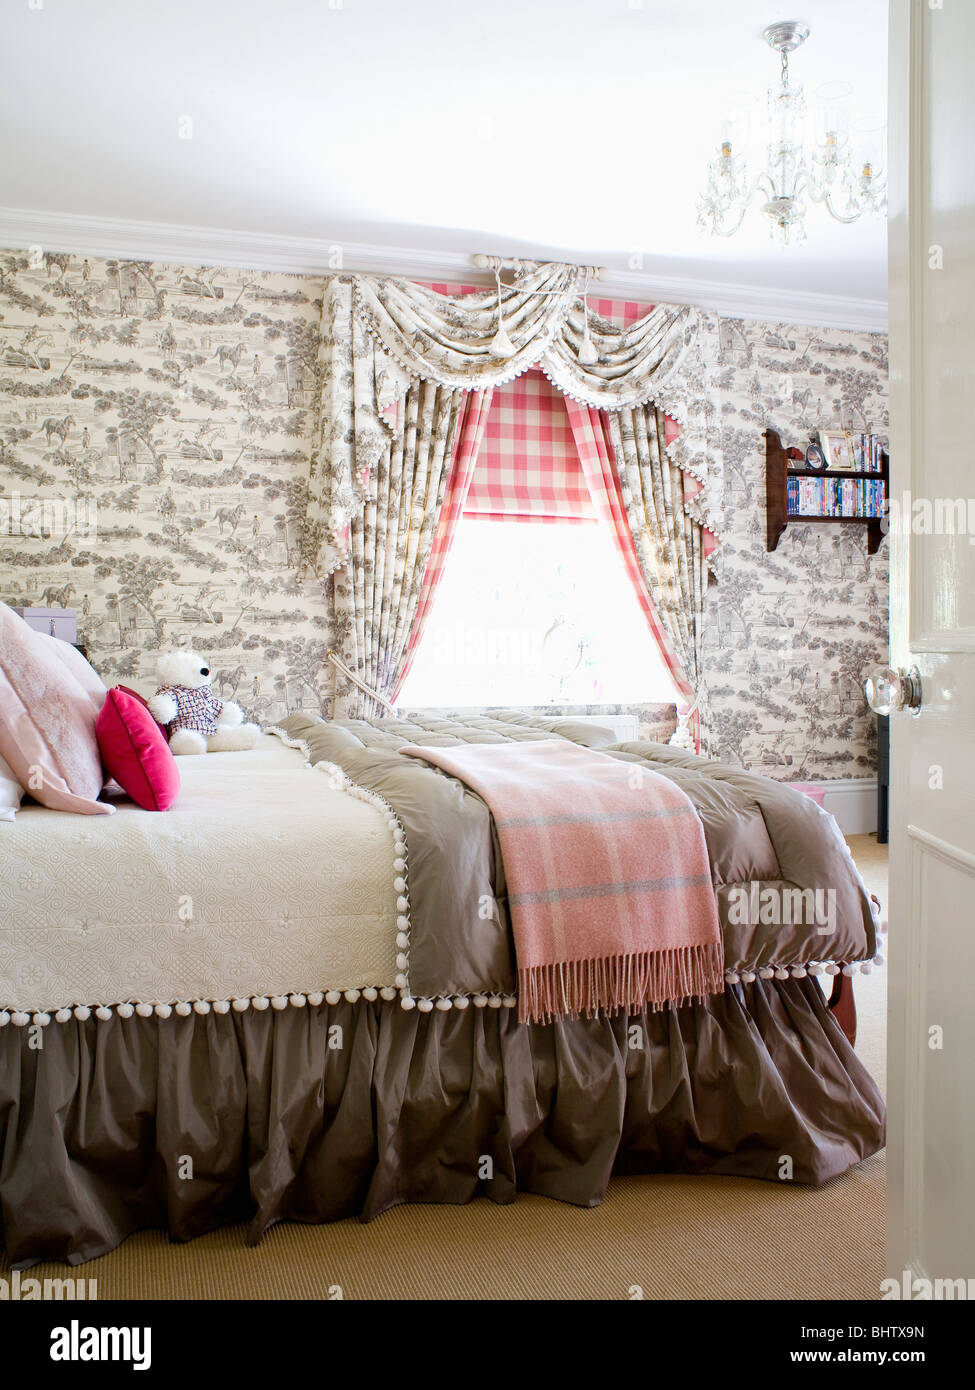 Grey Toile De Jouy Wallpaper And Curtains In Country Bedroom With Red  Checked Blind At Window And Bed With Brown Quilt